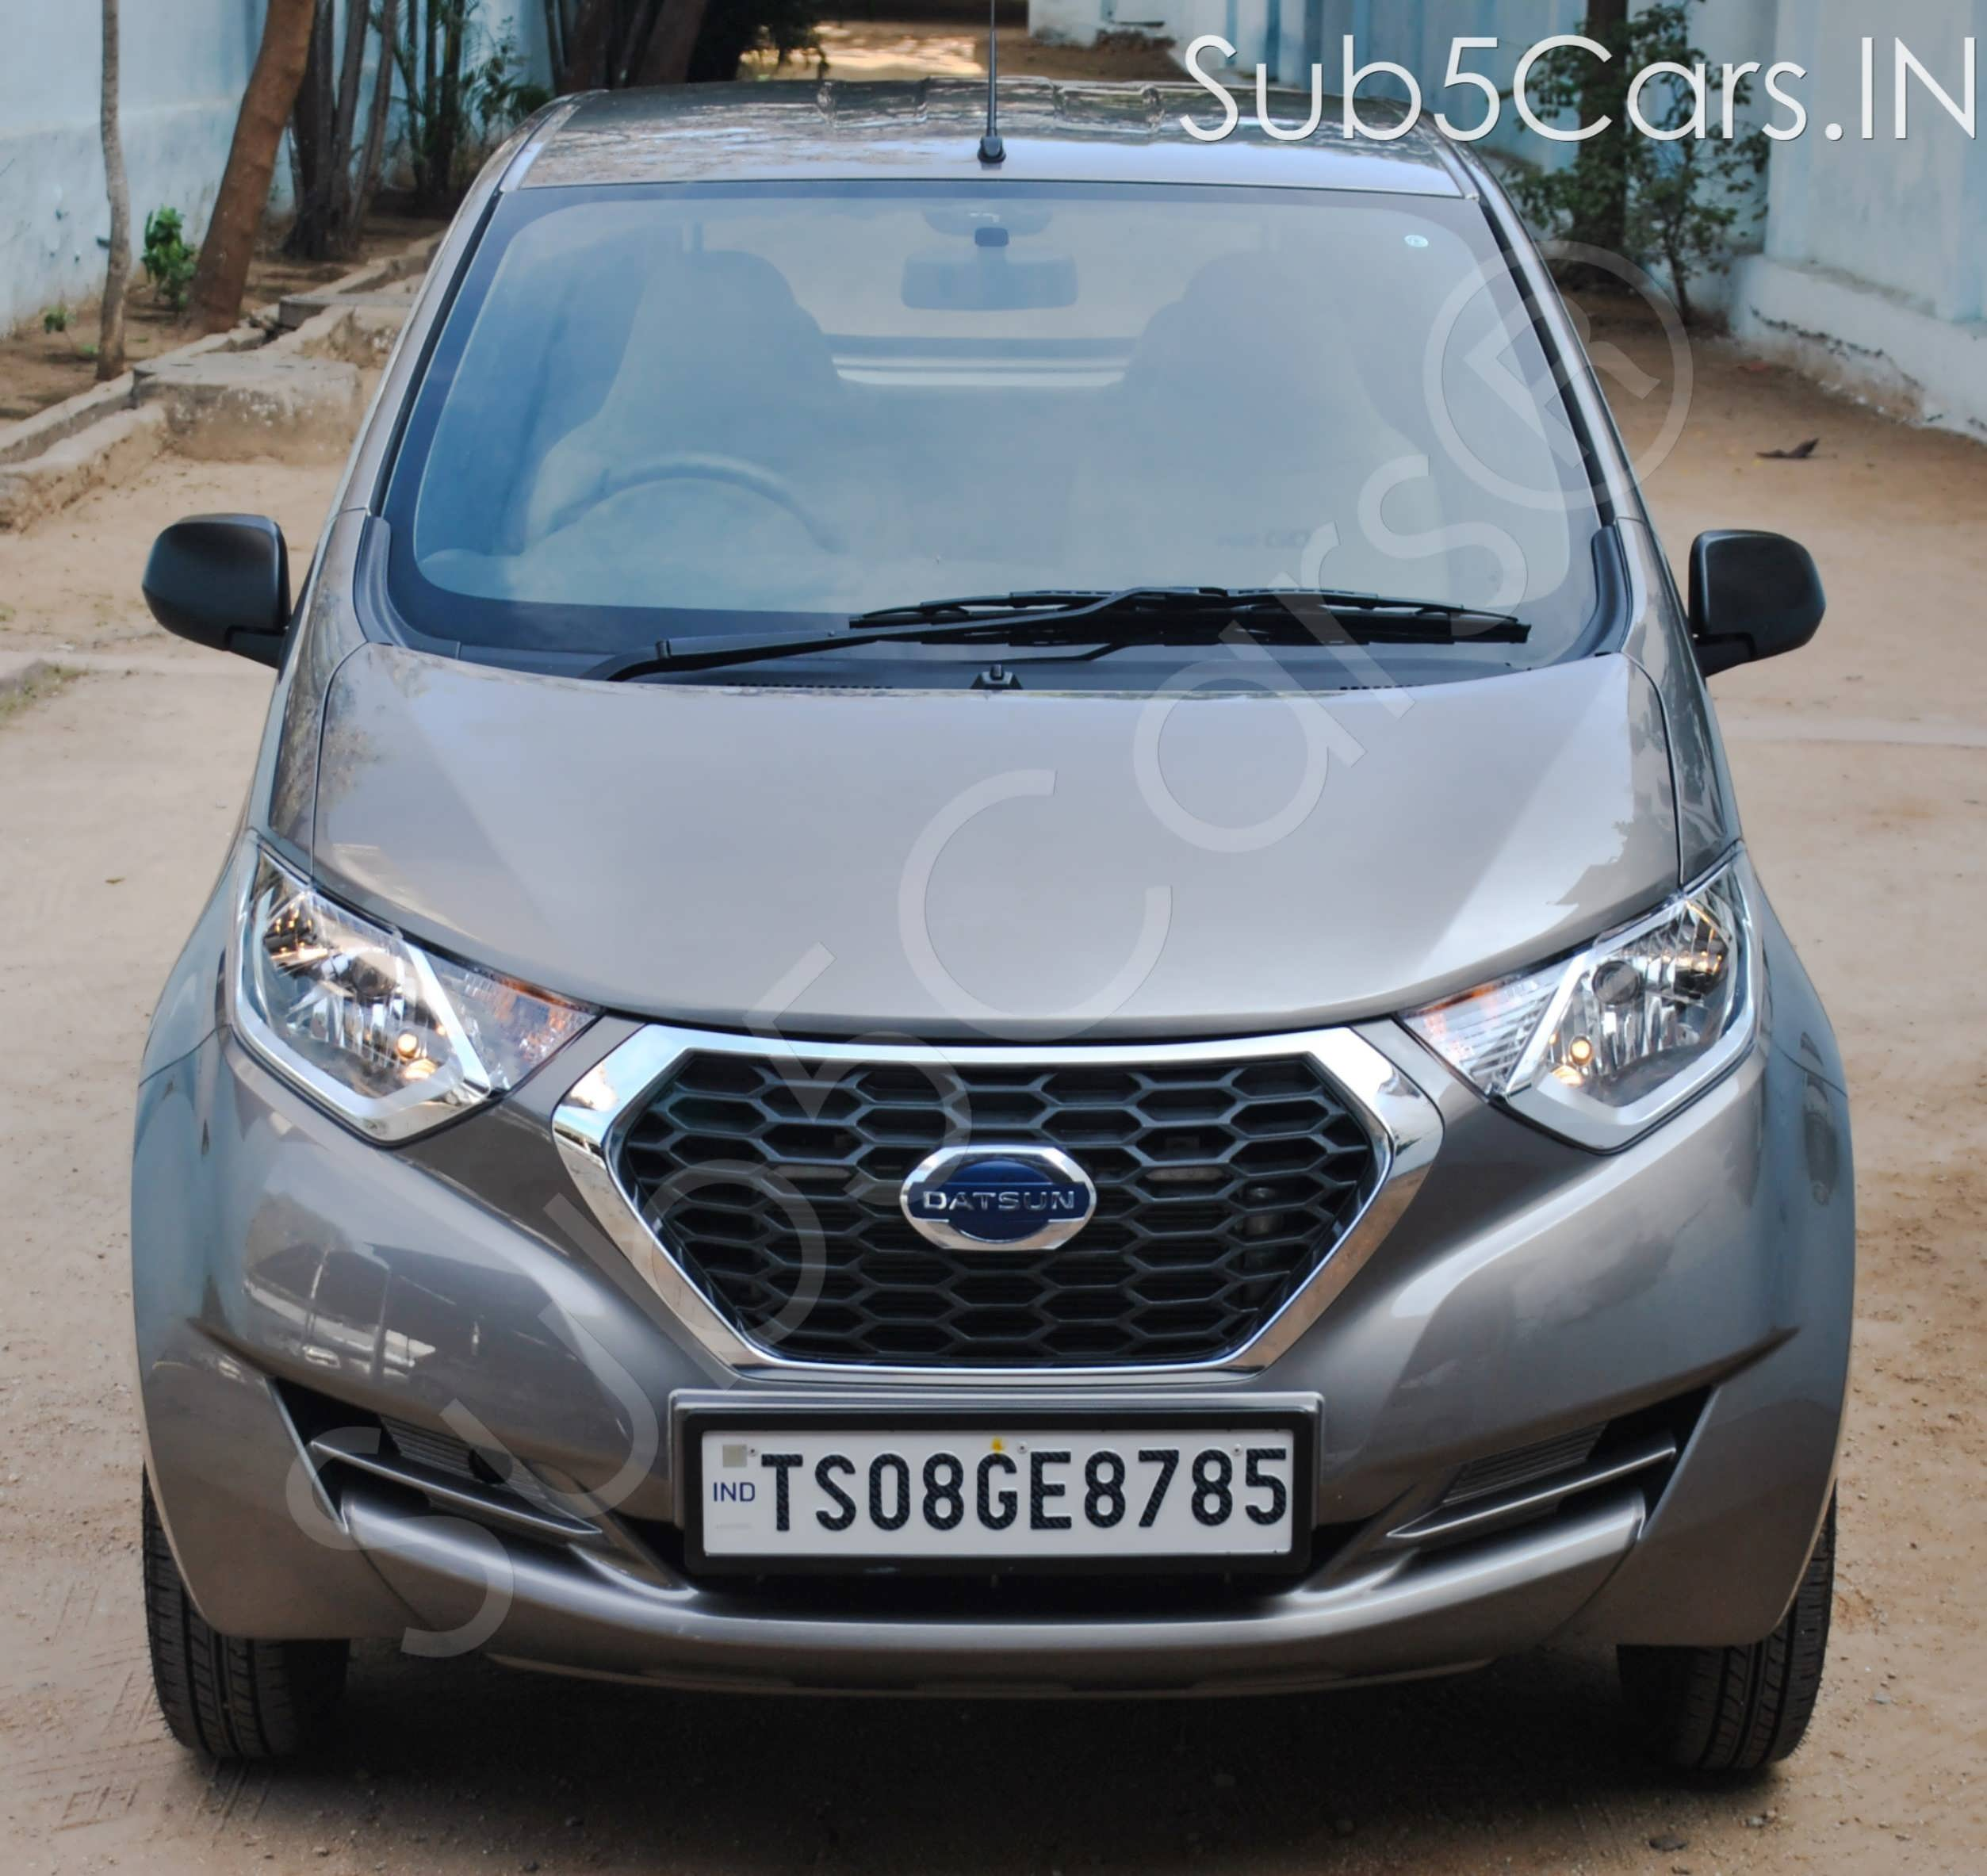 Datsun redi-GO 2016-2020 1.0 T Option